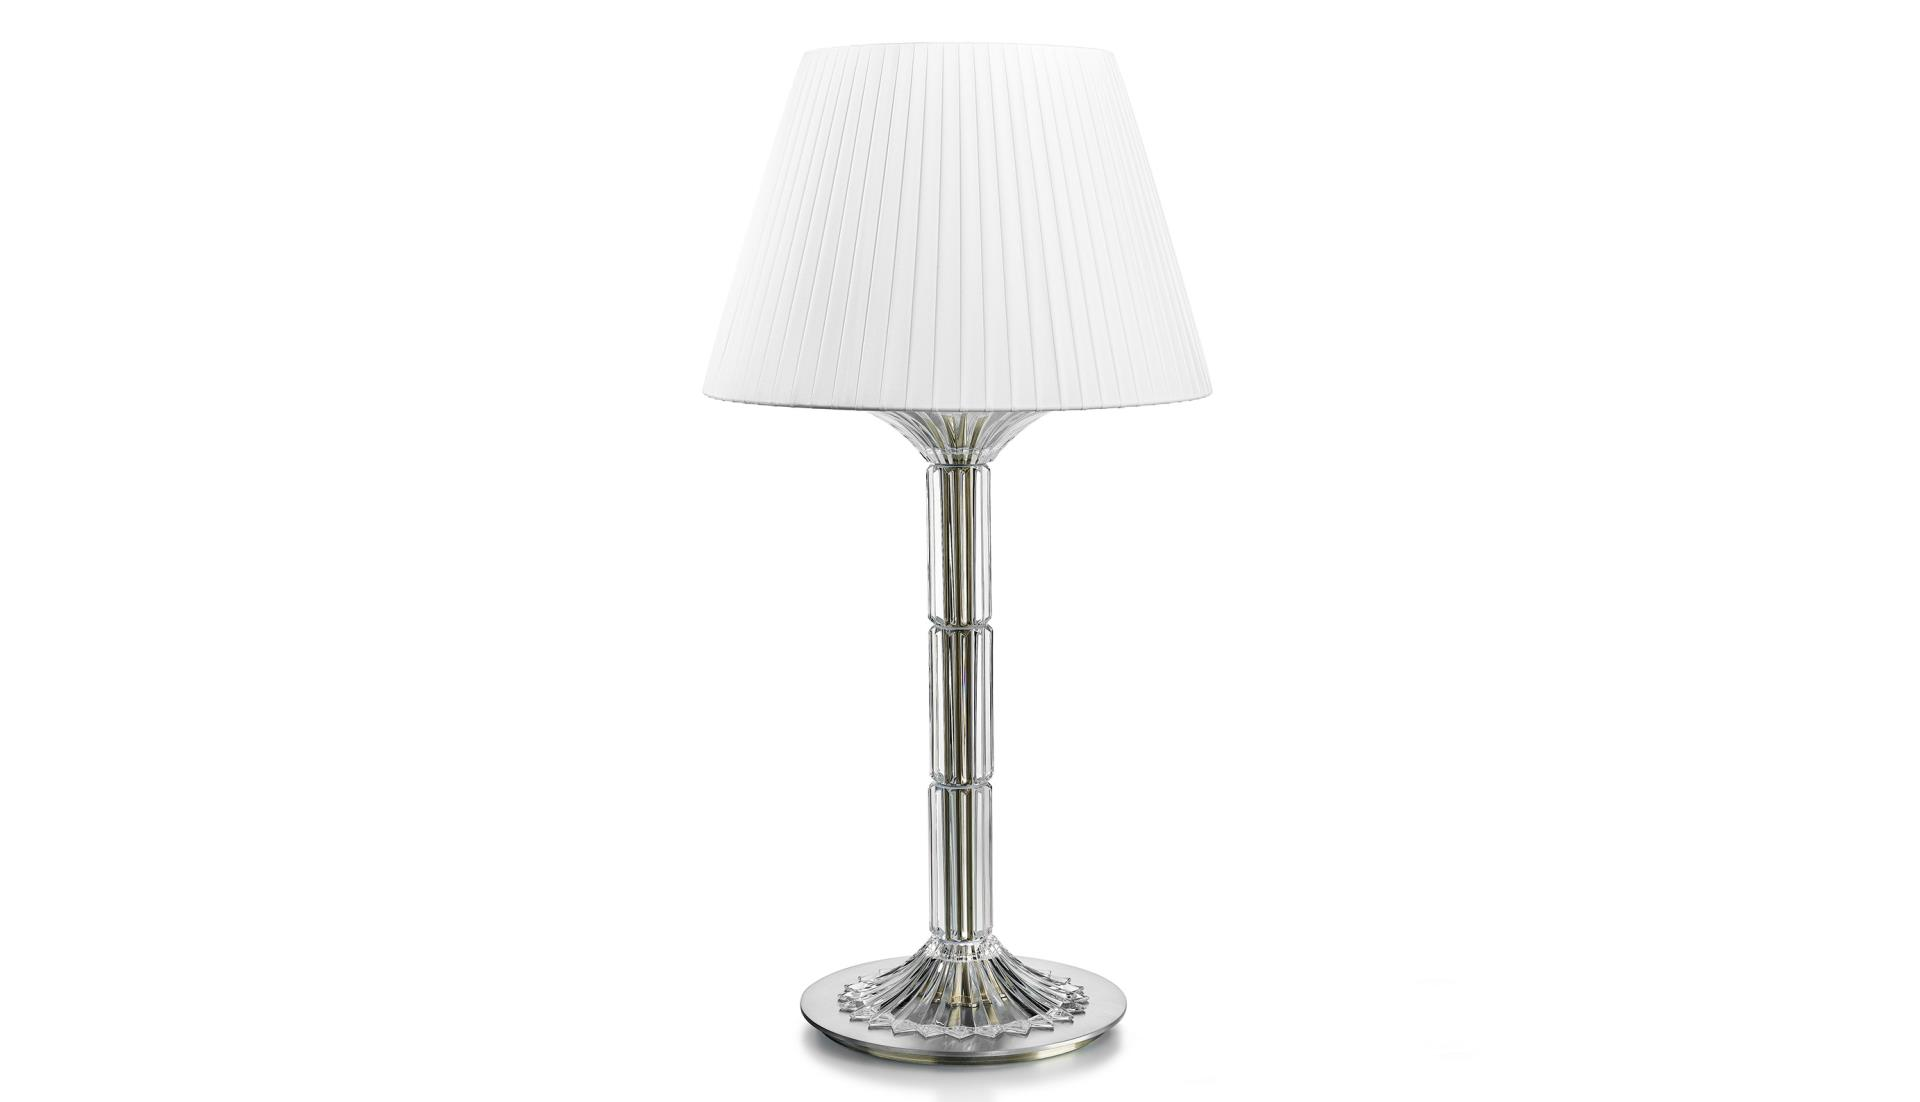 Baccarat Mille Nuits Table Lamp